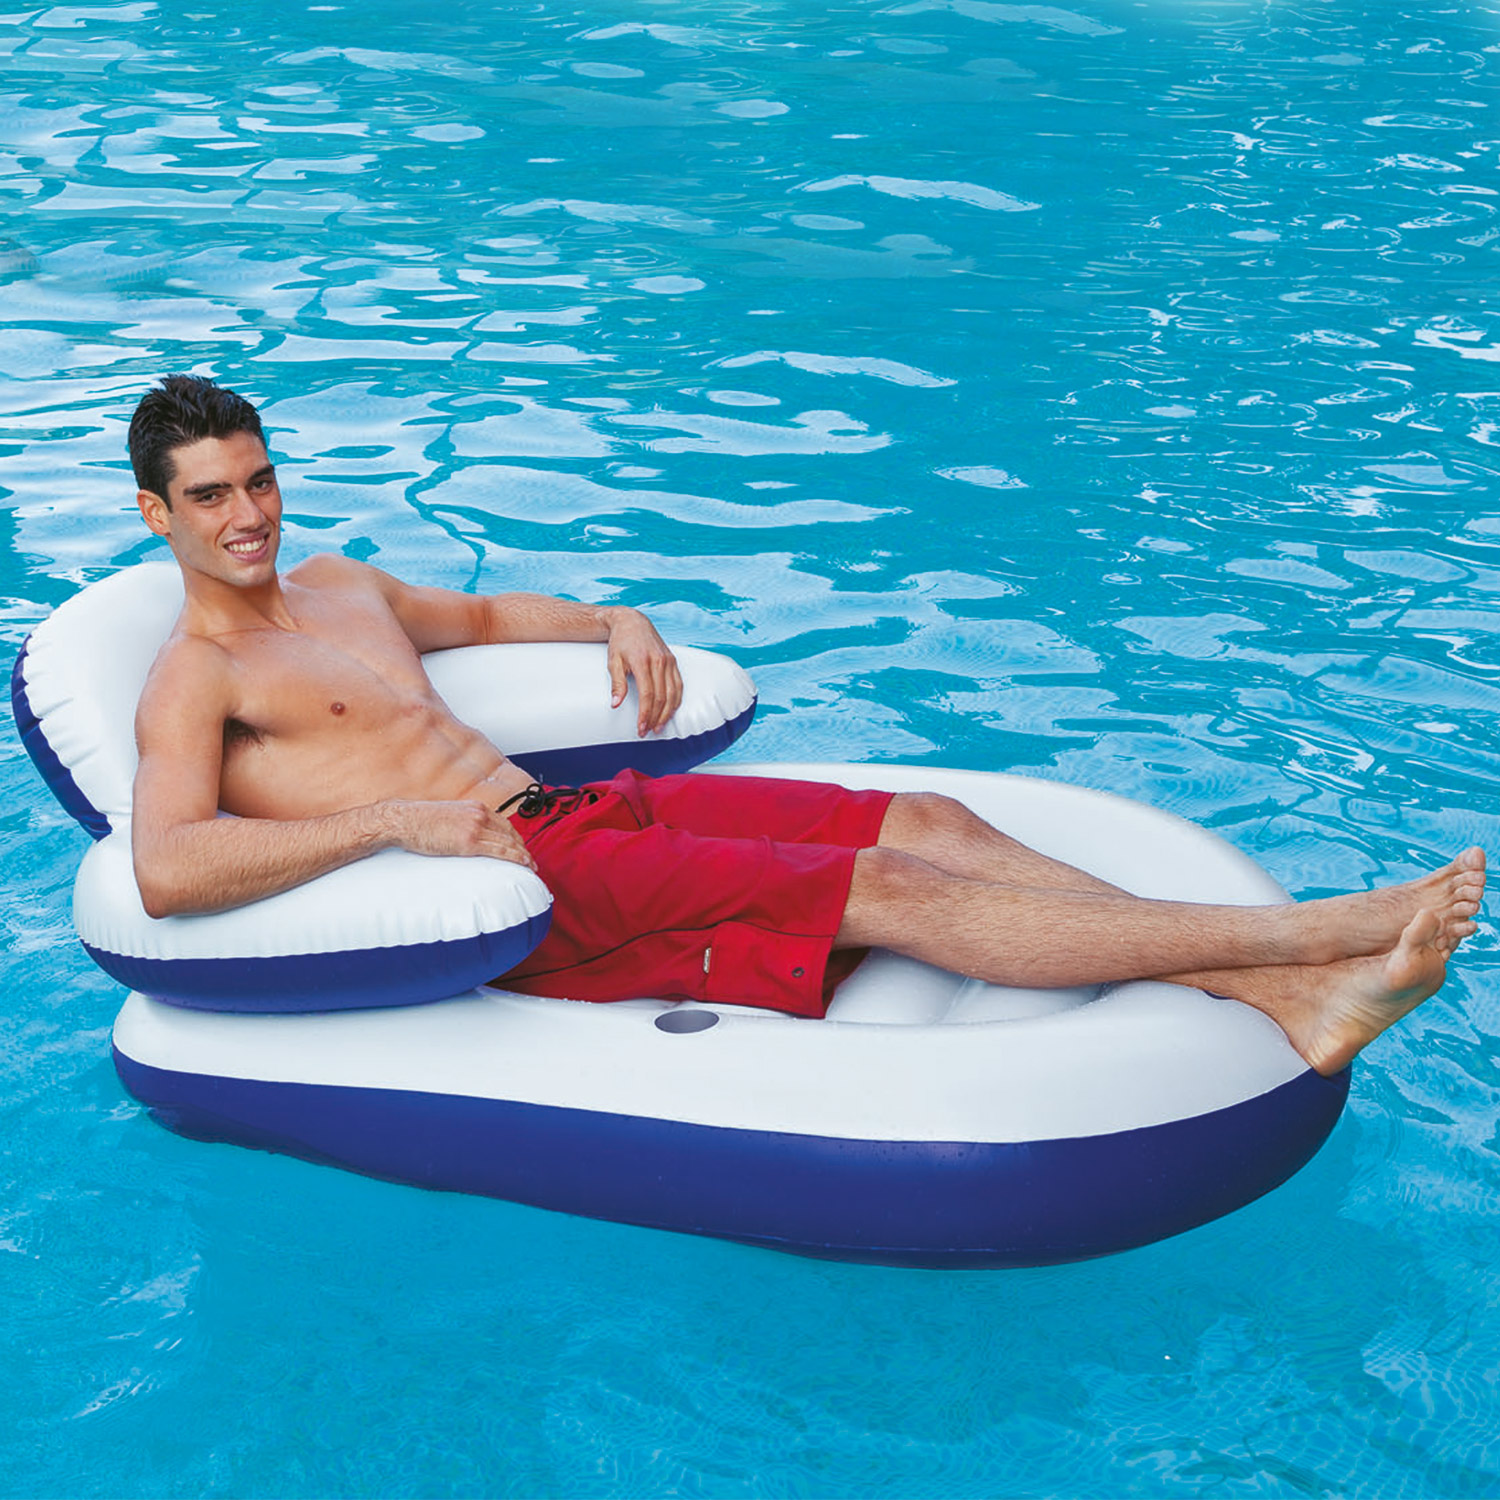 Intex Lounge Sessel Intex Schwimmliege Pool Liege Sessel Lounge Wasserliege Badeinsel